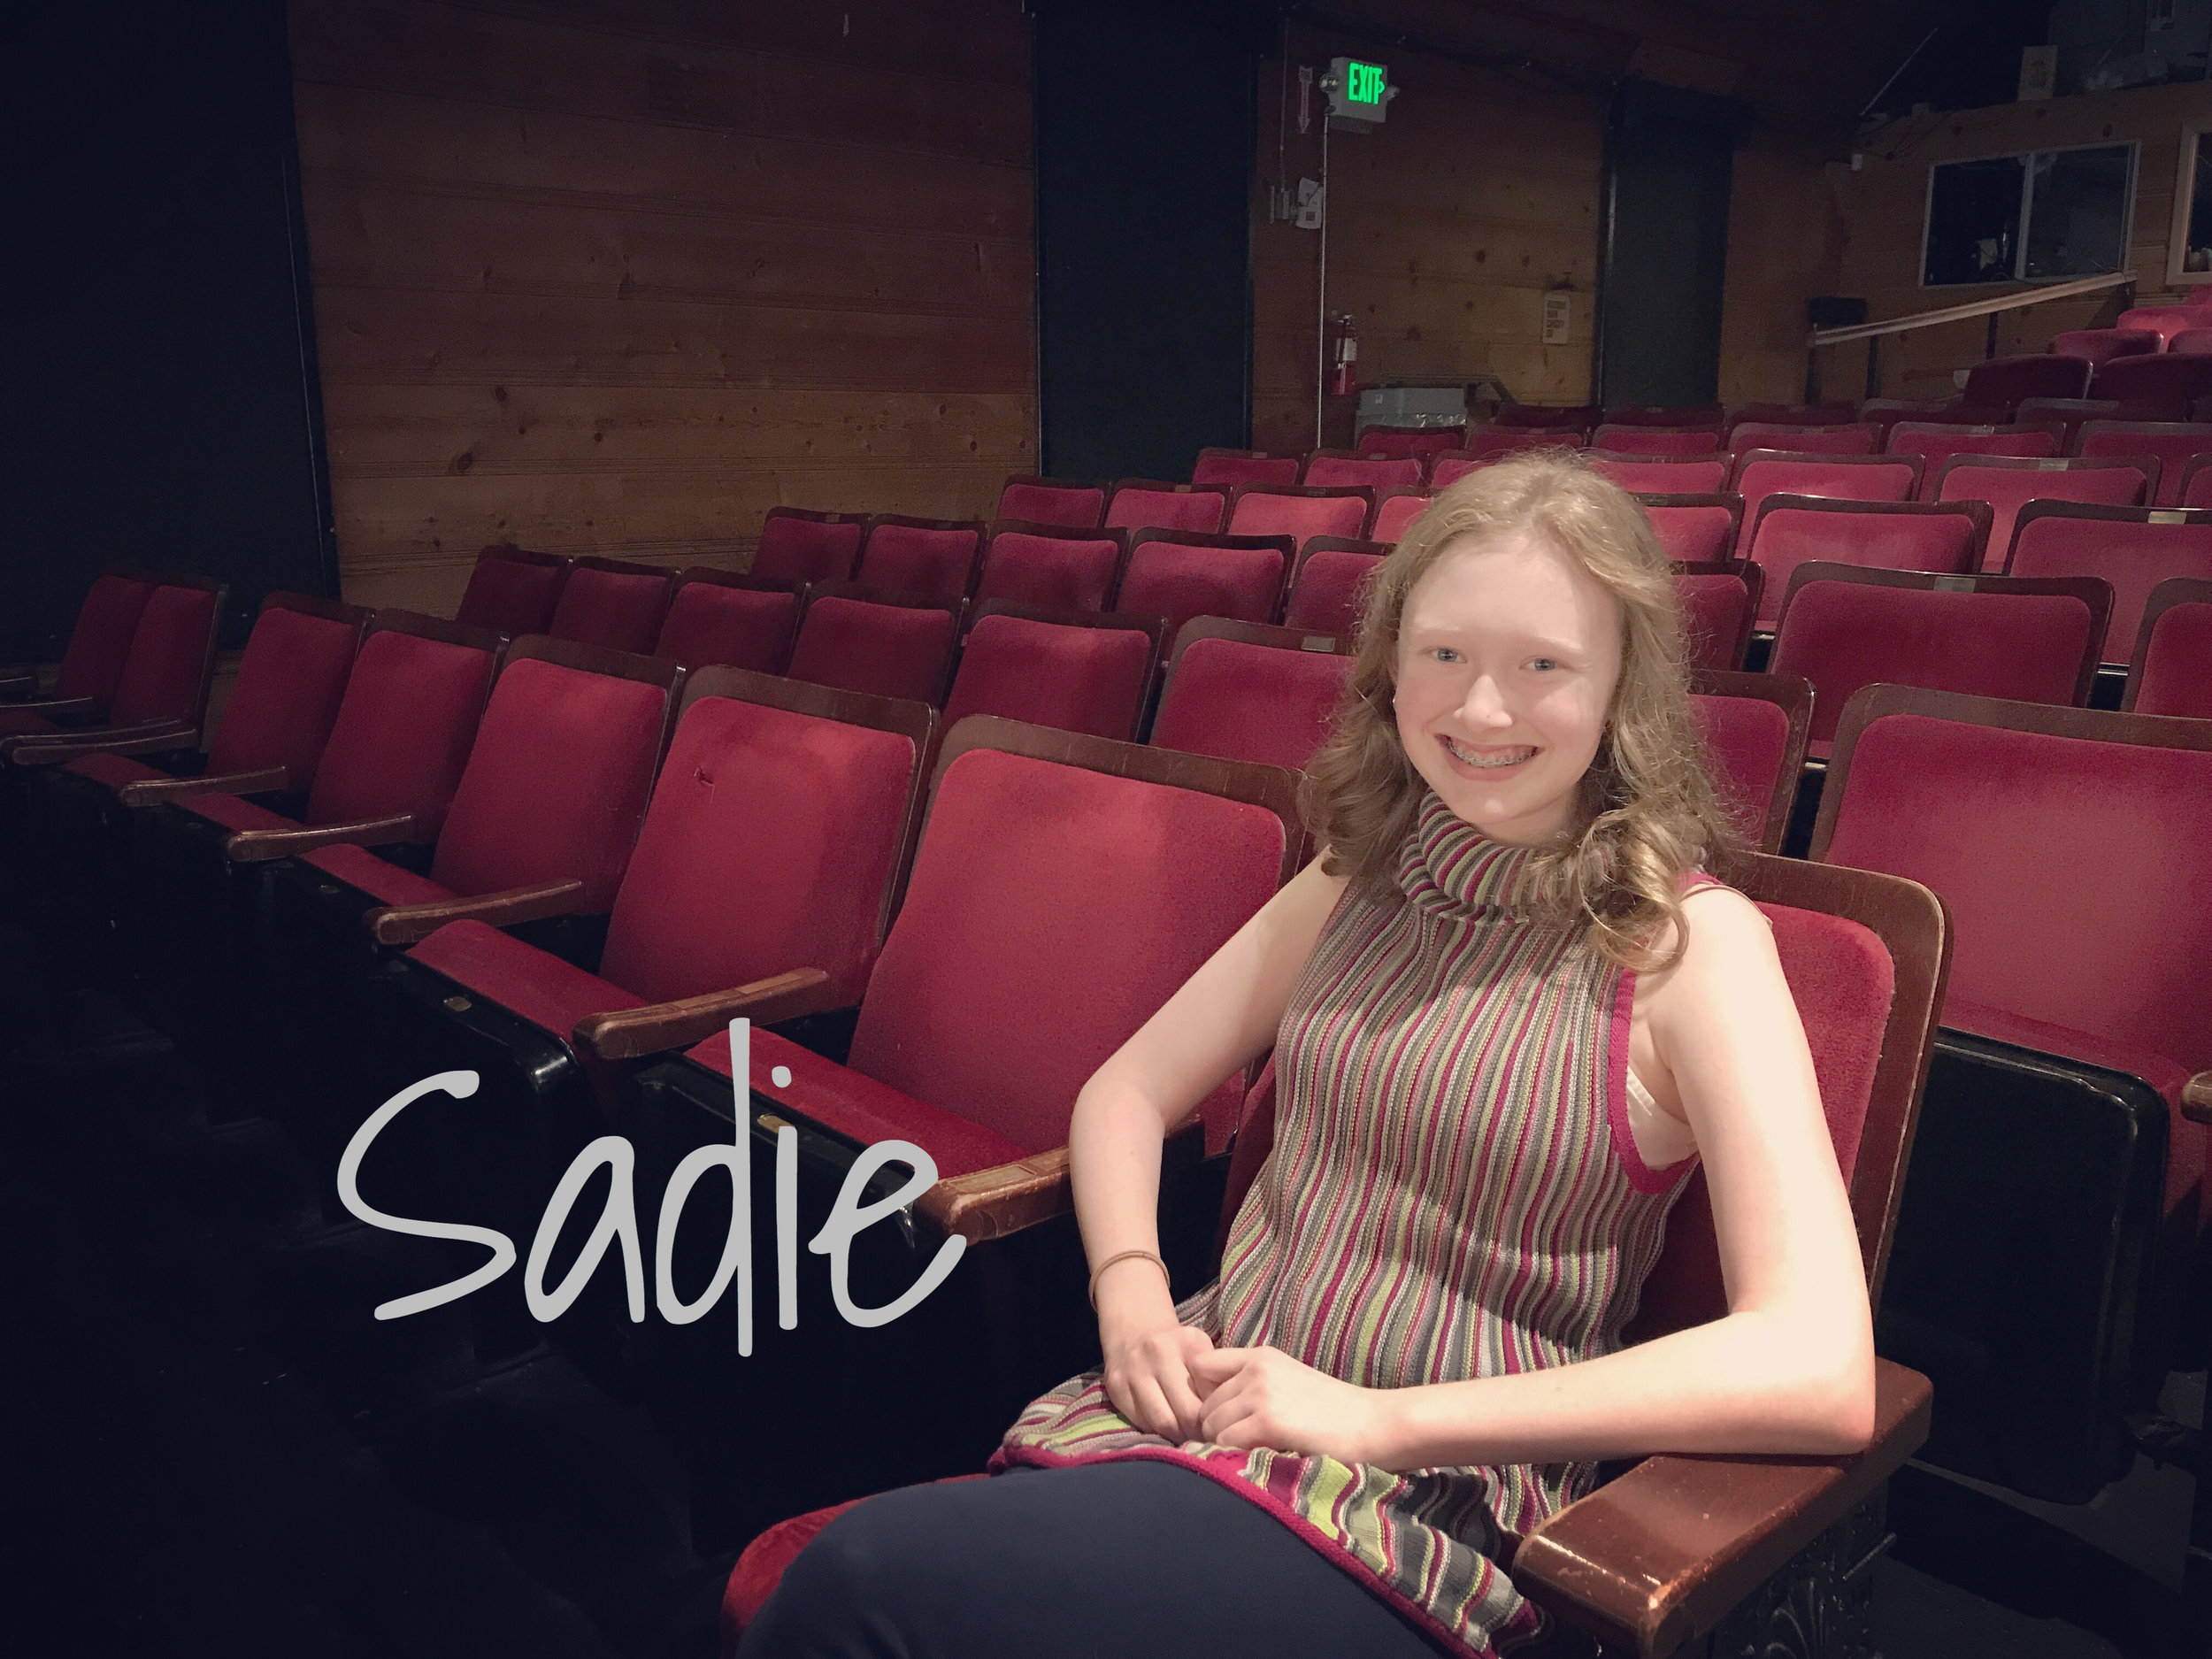 Sadie - READ WHAT SADIE HAS TO SAY ABOUT THE REVOLUTIONISTS!READ WHAT SADIE HAS TO SAY ABOUT GREAT EXPECTATIONS!READ WHAT SADIE HAS TO SAY ABOUT BROOKLYN BRIDGE!READ WHAT SADIE HAS TO SAY ABOUT WOMEN ON THE VERGE!